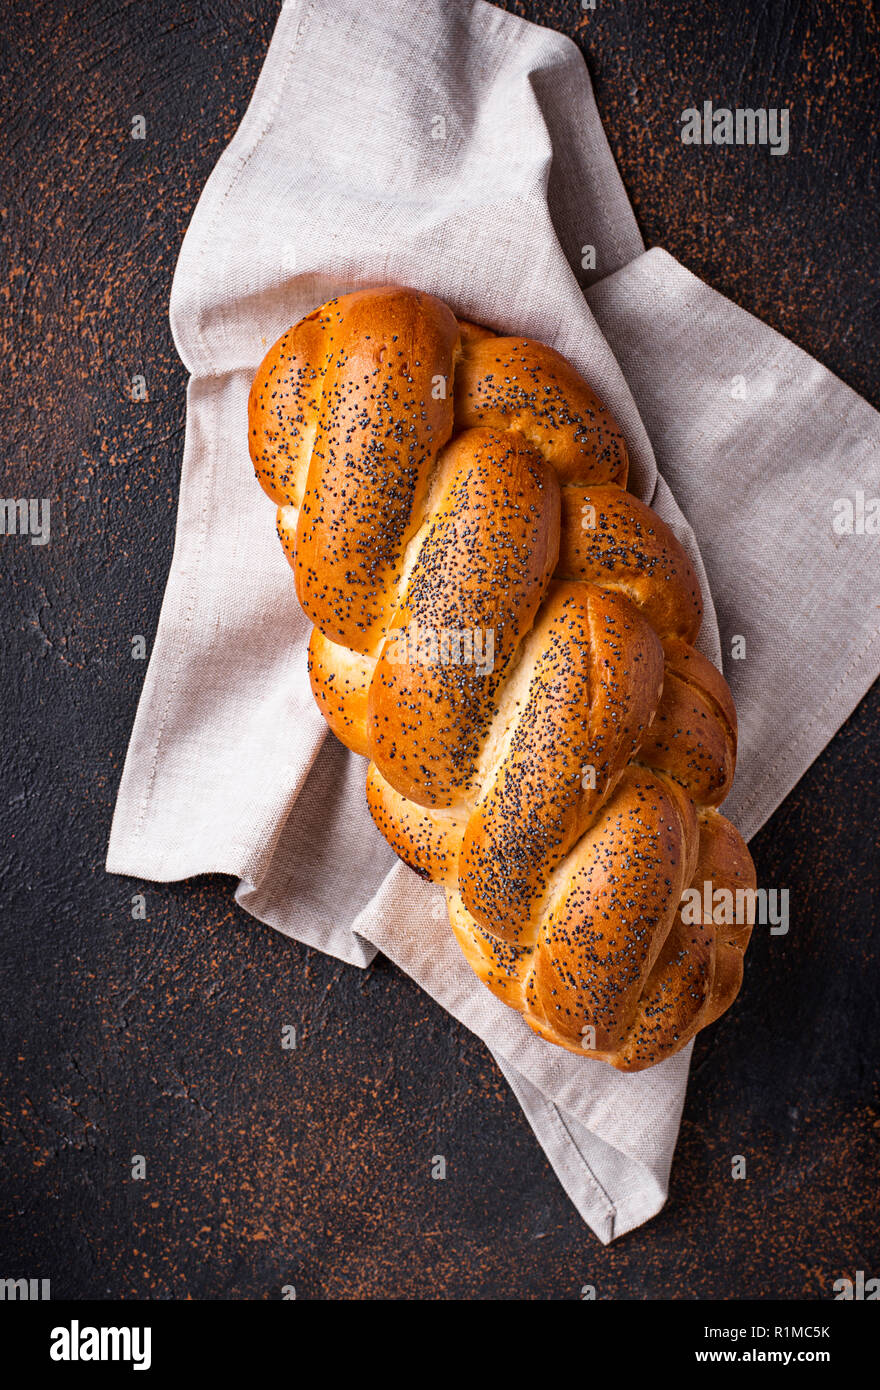 Sweet bread with poppy seeds - Stock Image